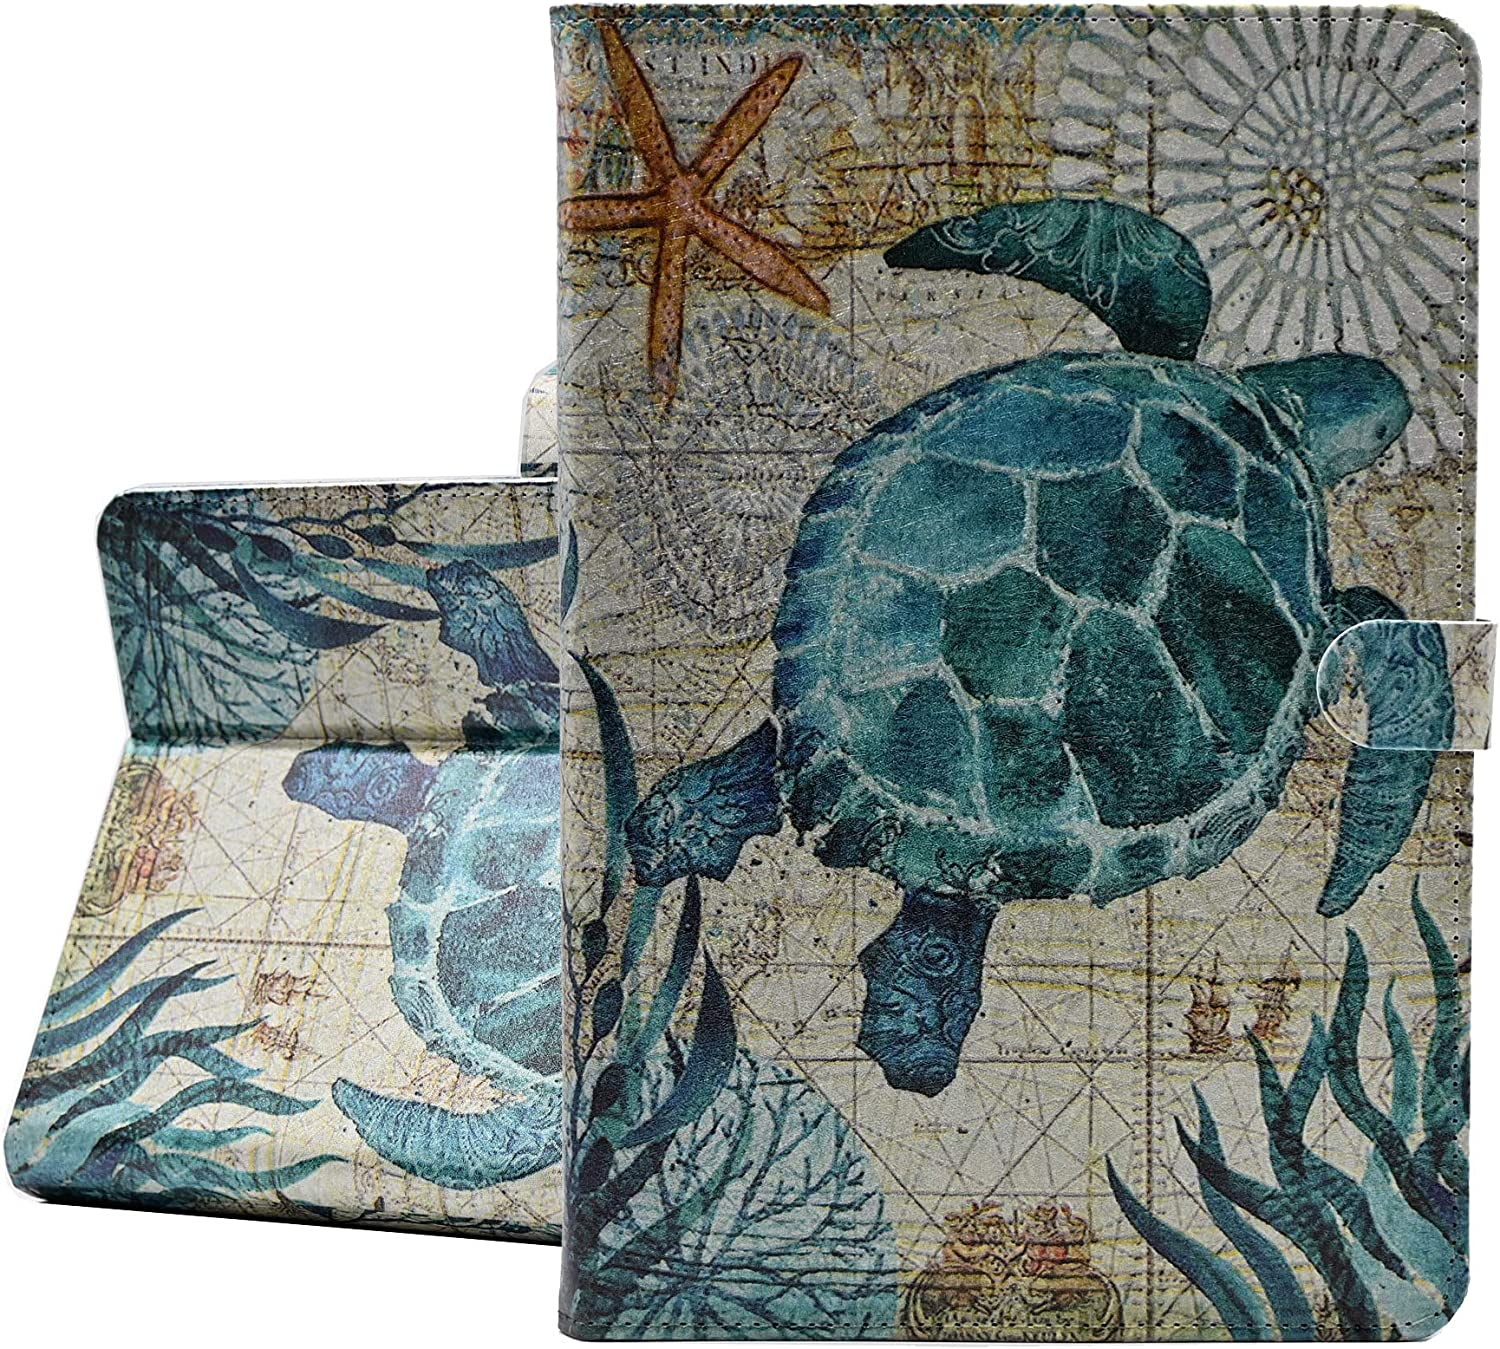 YHB iPad 10.2 Case 2020 iPad 8th Gen/2019 iPad 7th Gen,Ocean Theme Leather Flip Multi-Angle Viewing Slim Stand Protector Cover for iPad 10.2 Inch,Sea Turtle